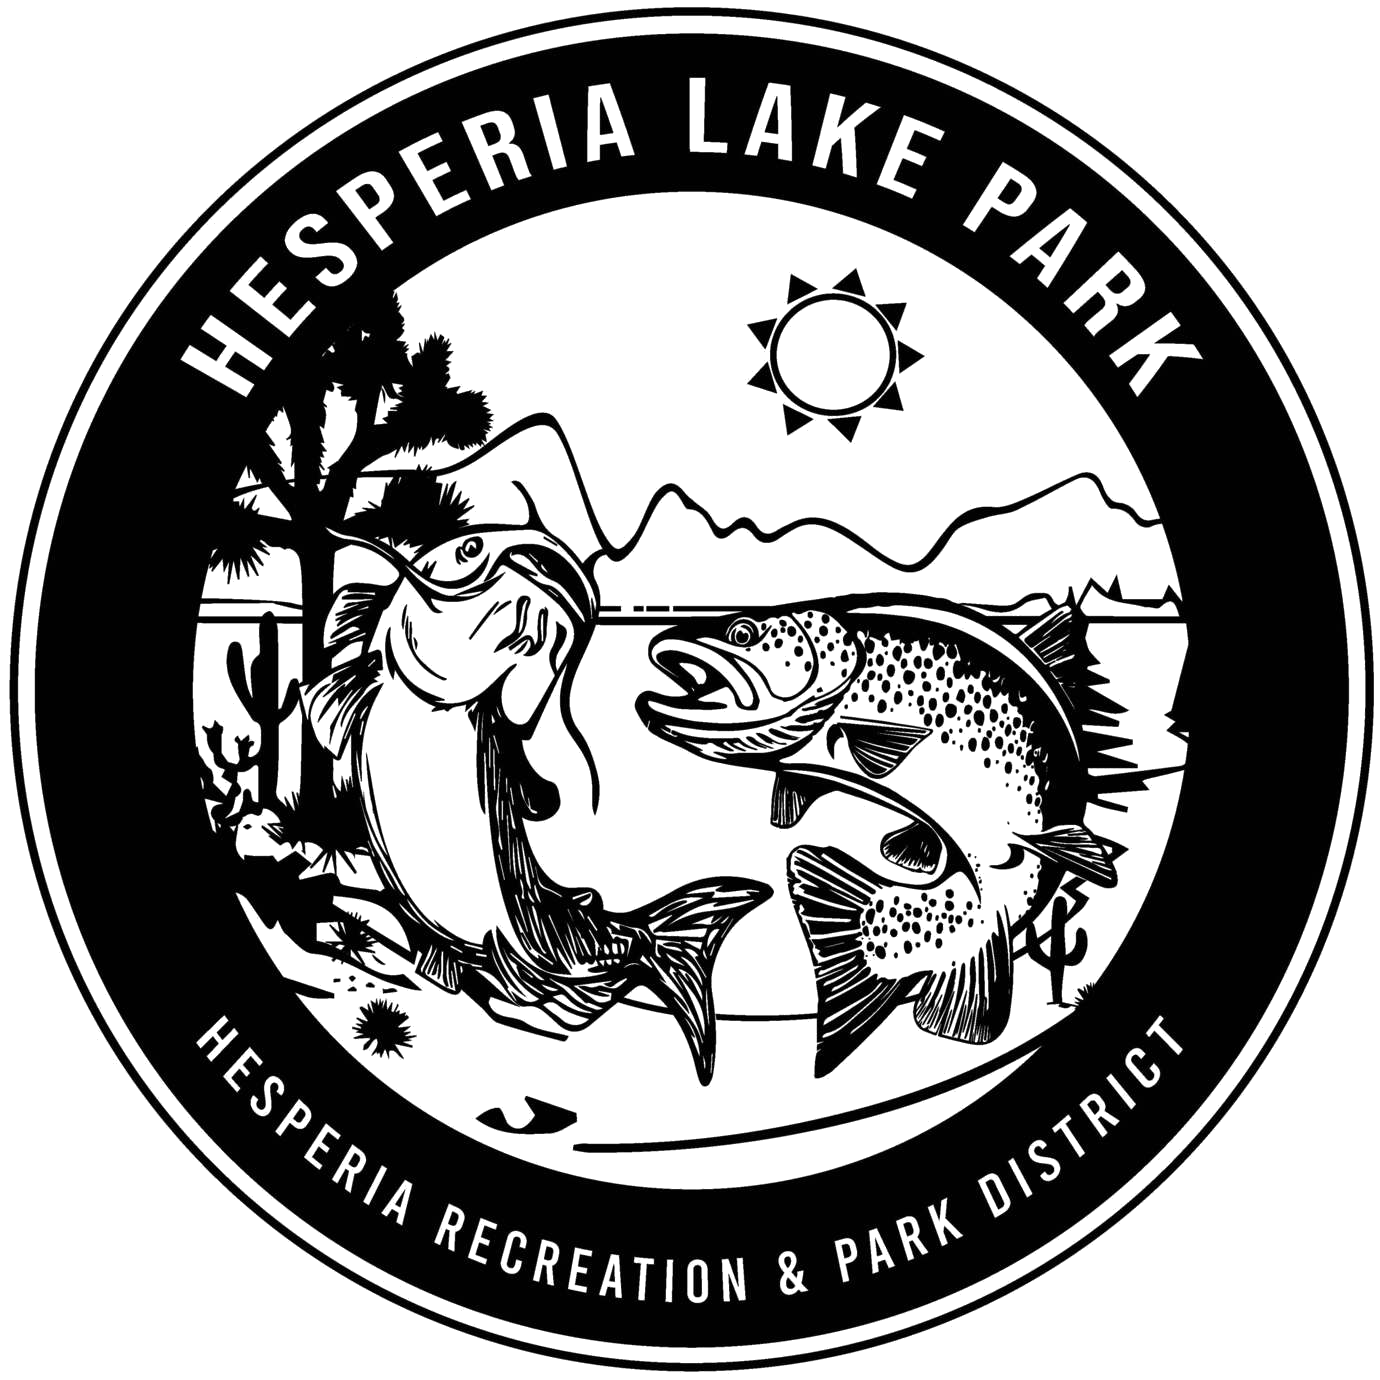 Hesperia Lake Park logo; Trout and Catfish cartoon, Hesperia Recreation and Park District